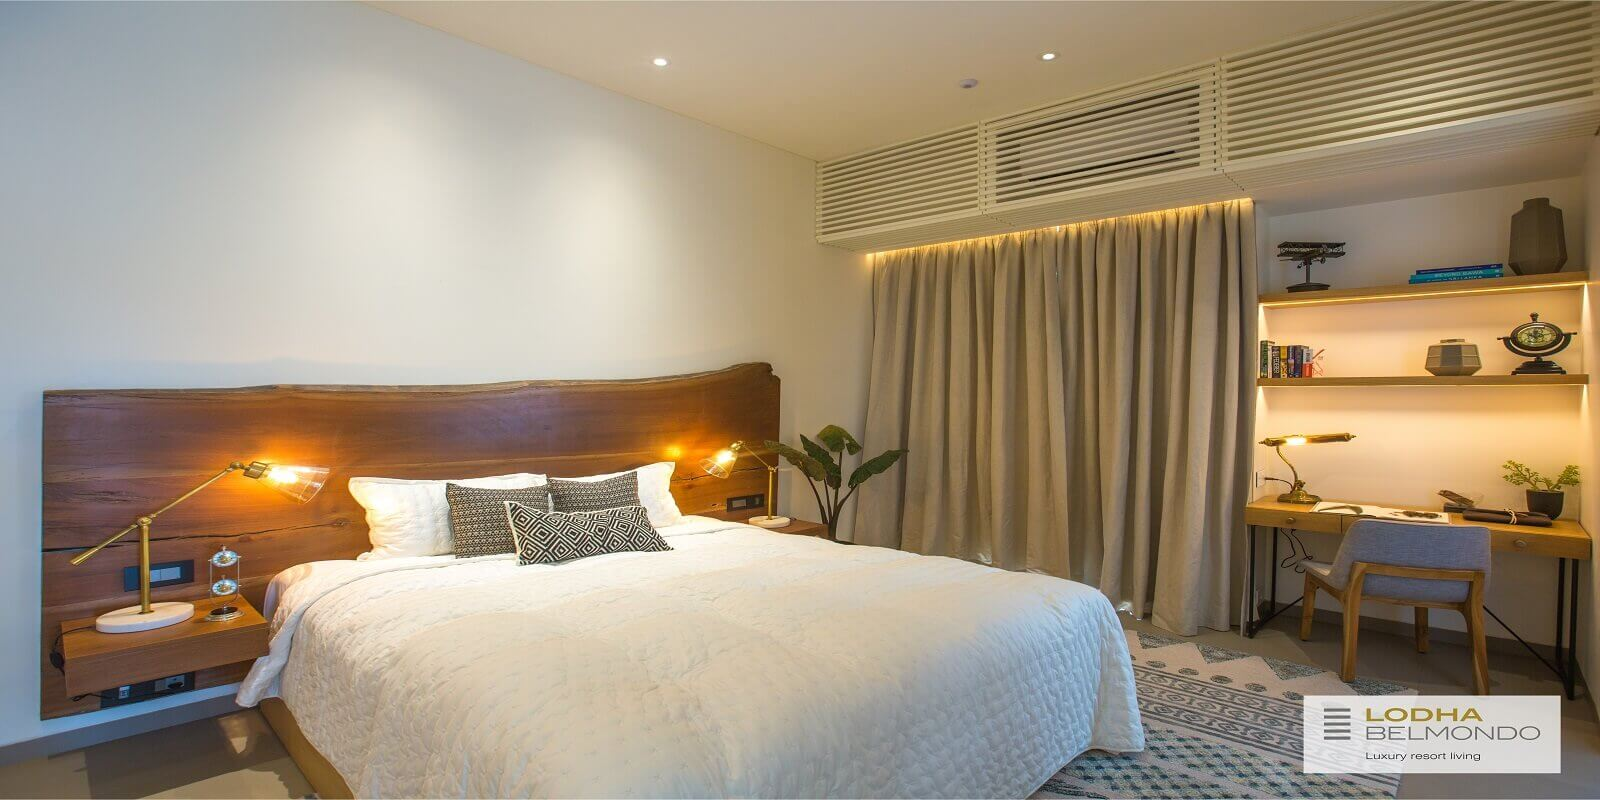 lodha belmondo apartment interiors5